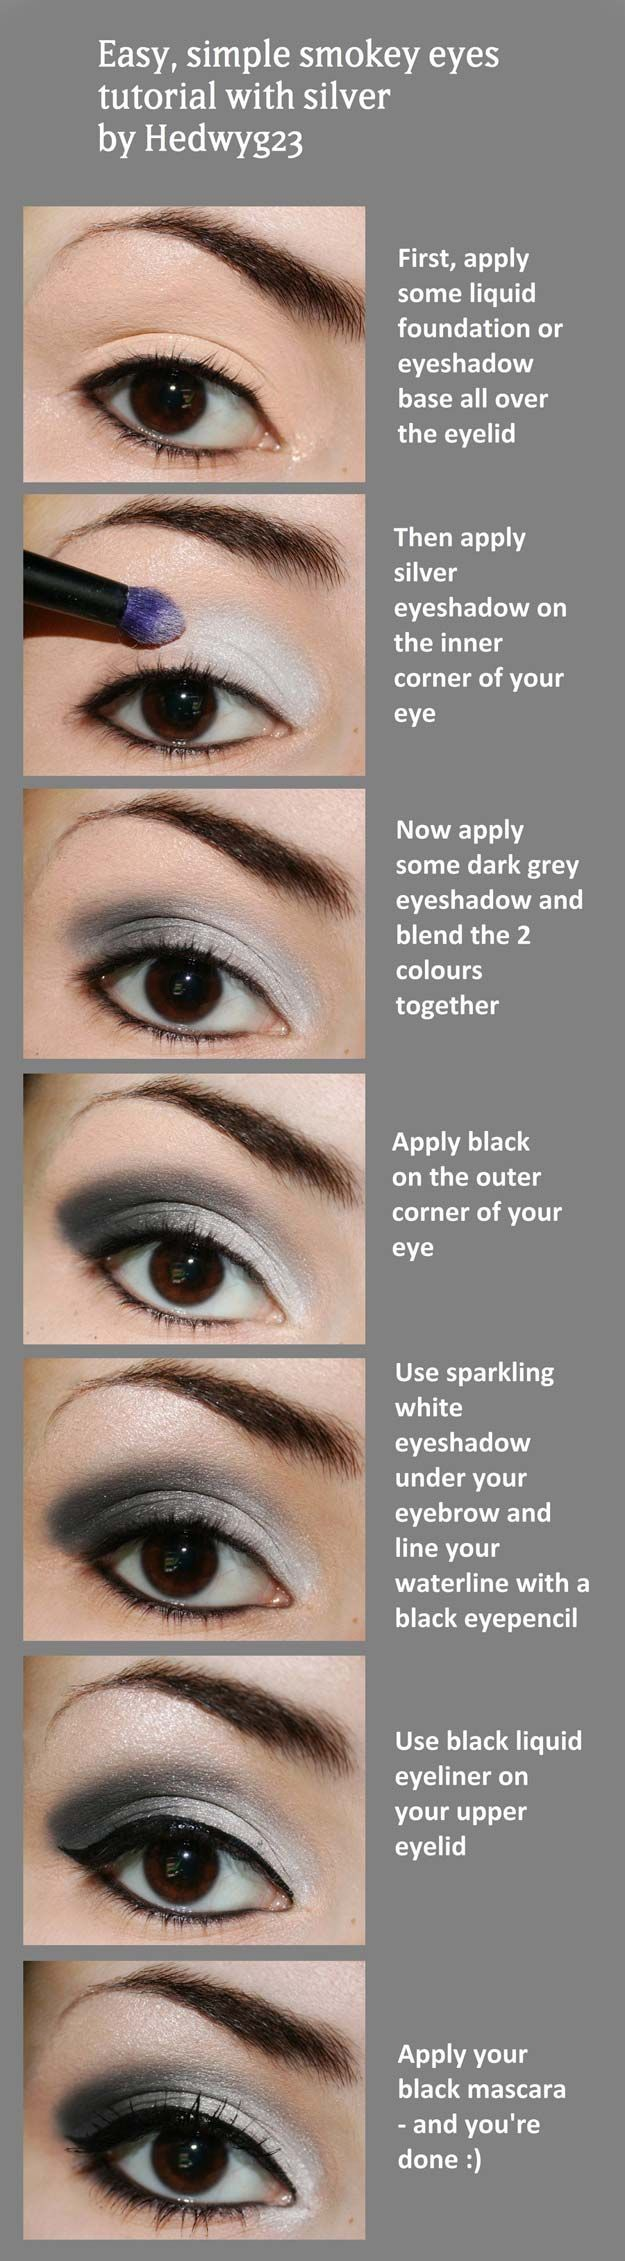 Step by Step Smokey Eye Tutorials - Easy and Simple - Step by Step Tutorials on How to Apply Different Eyeshadows for Smokey Eyes - Awesome Looks for Brown, Black, and Blue Eyes, Natural Looks, and Looks for All Types of Lashes - thegoddess.com/step-by-step-smokey-eye